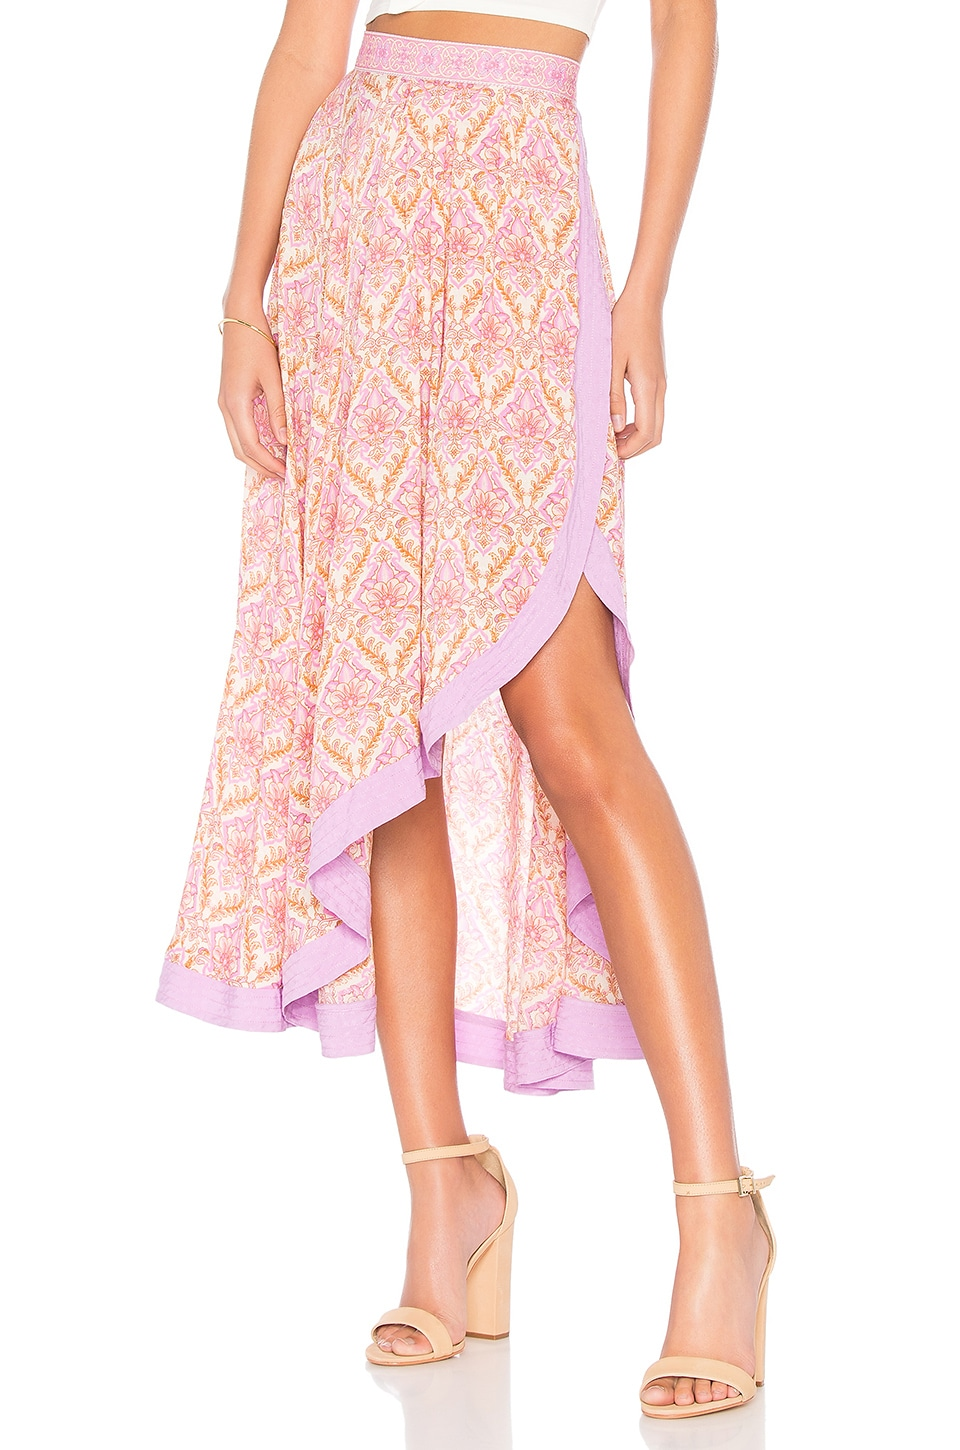 SPELL & THE GYPSY COLLECTIVE JEWEL WRAP SKIRT